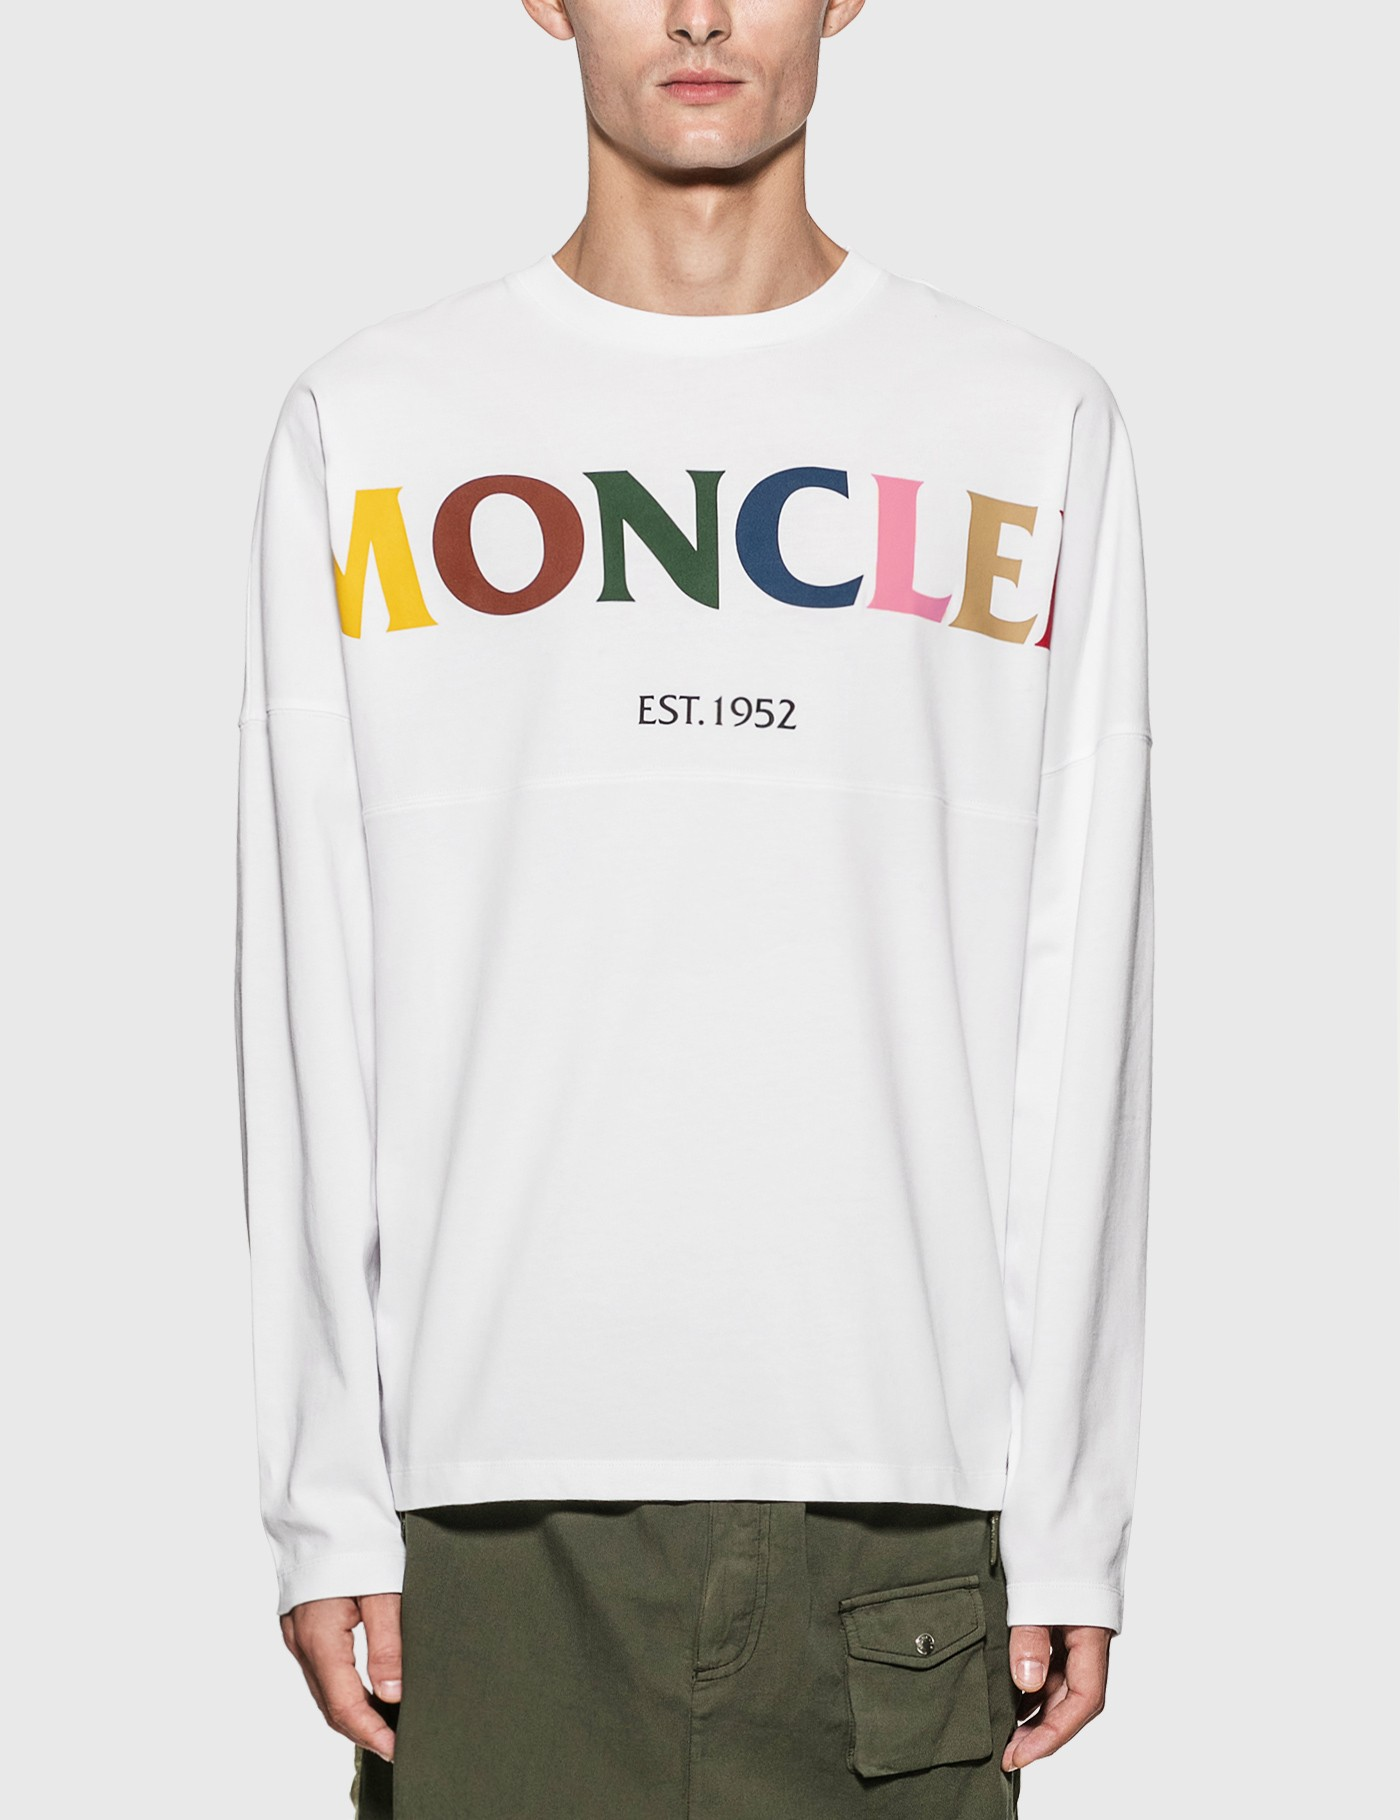 Moncler Genius T-shirts 1952 X UNDEFEATED COLORFUL LOGO LONG SLEEVE T-SHIRT